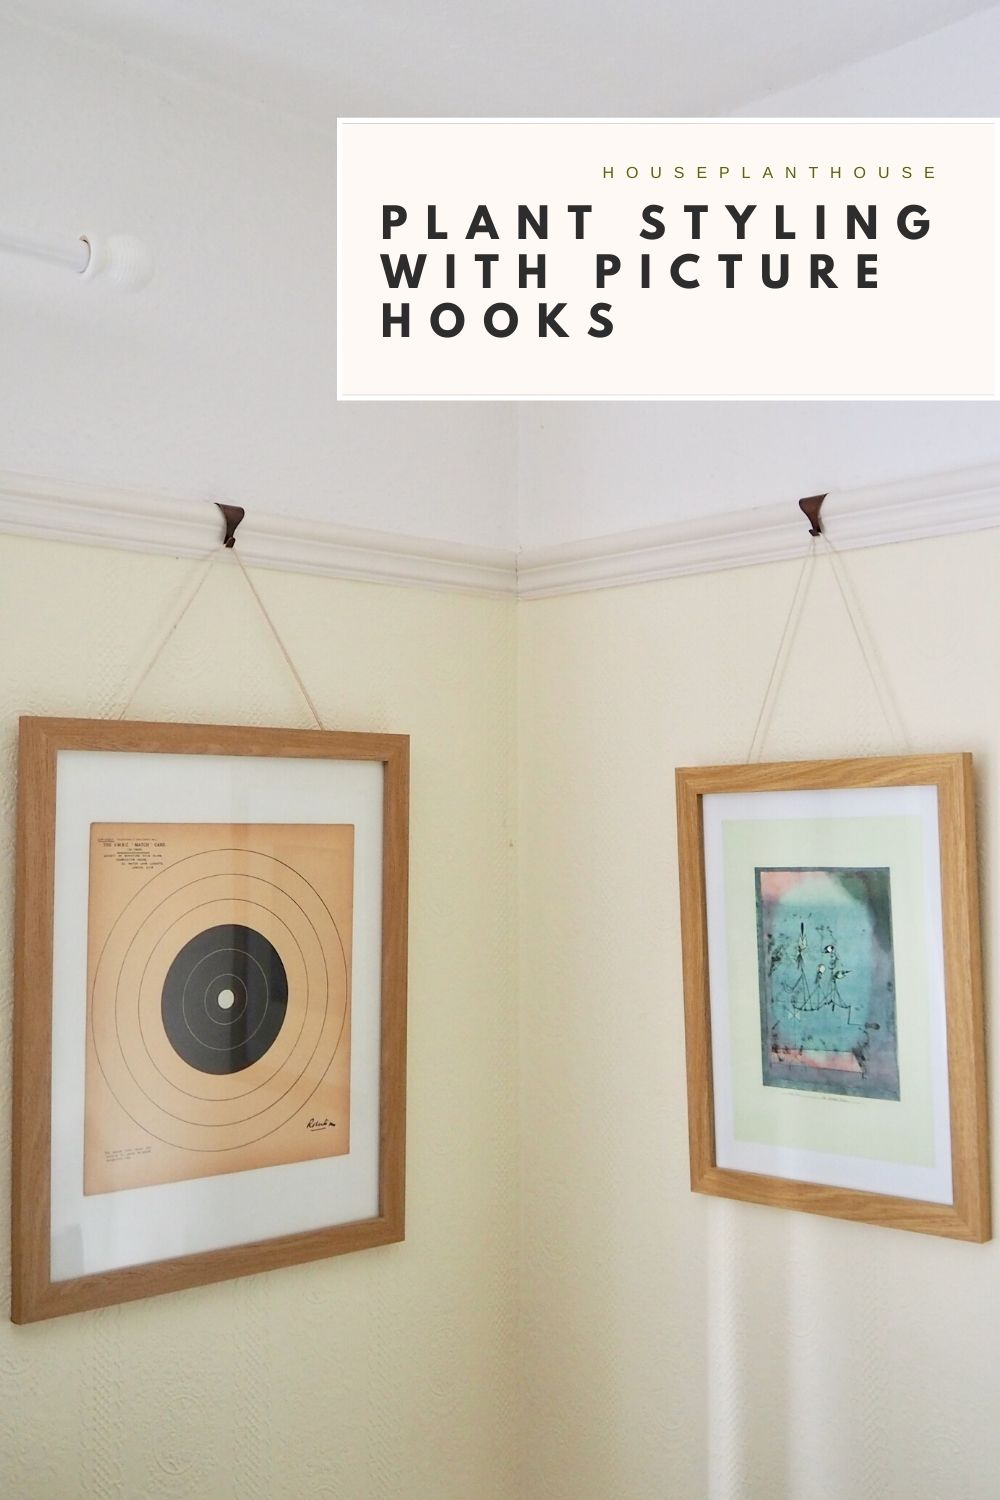 PLANT STYLING WITH PICTURE HOOKS